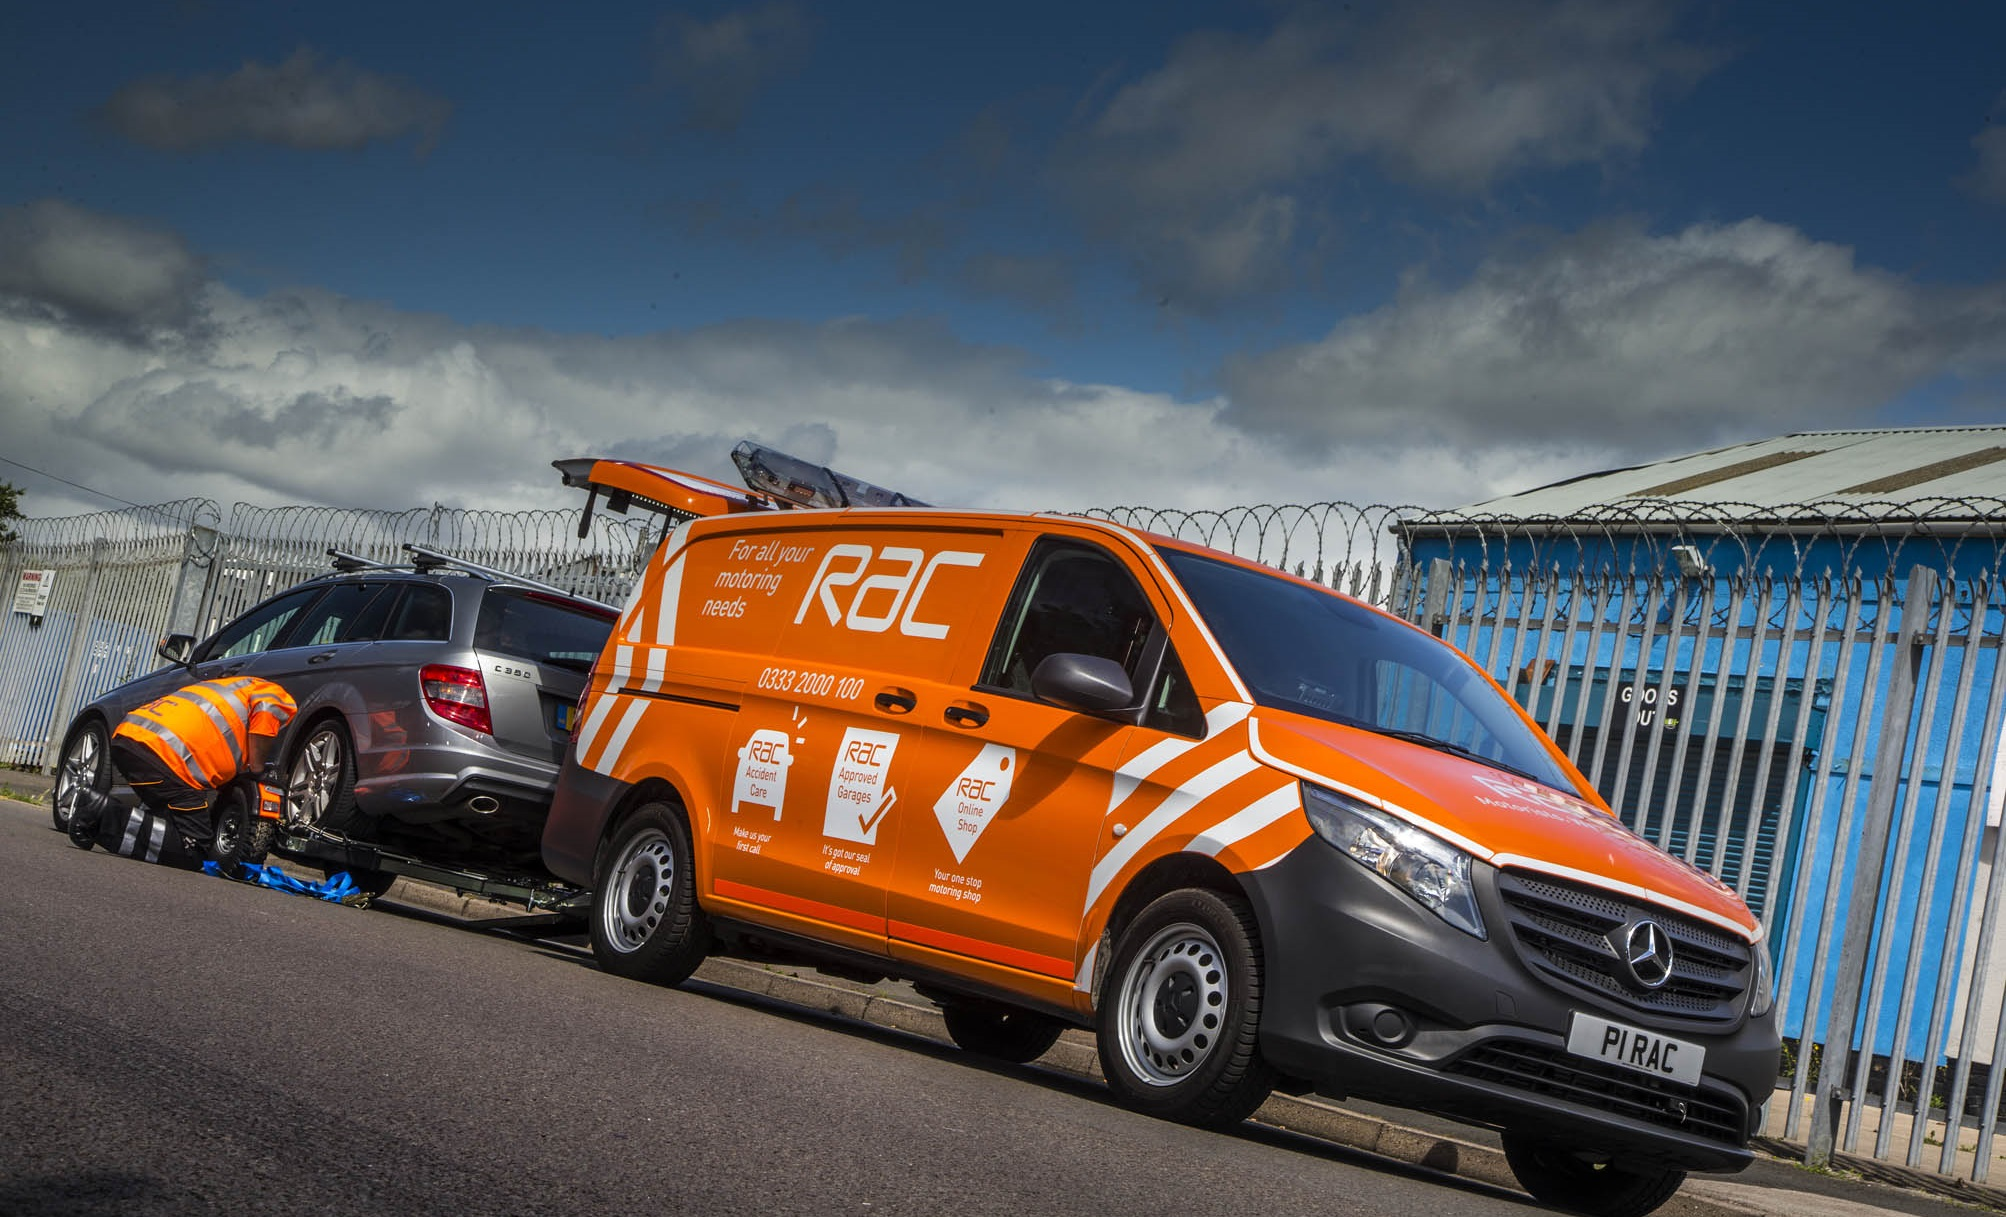 mercedes benz new vito goes on patrol with rac star vans uk haulier. Black Bedroom Furniture Sets. Home Design Ideas